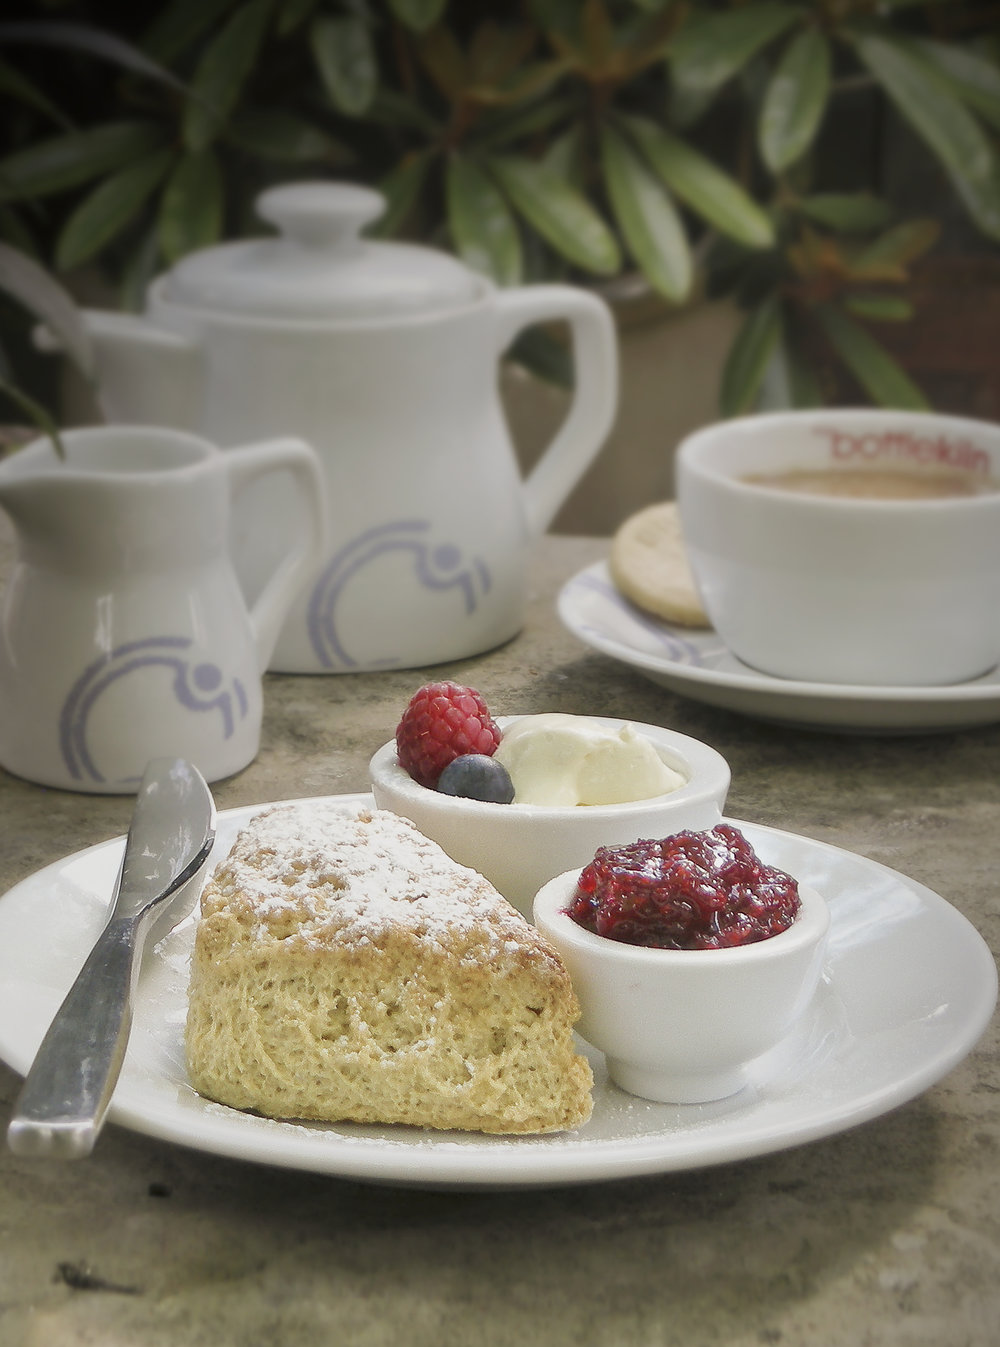 Photo of scone on plate with jam and cream